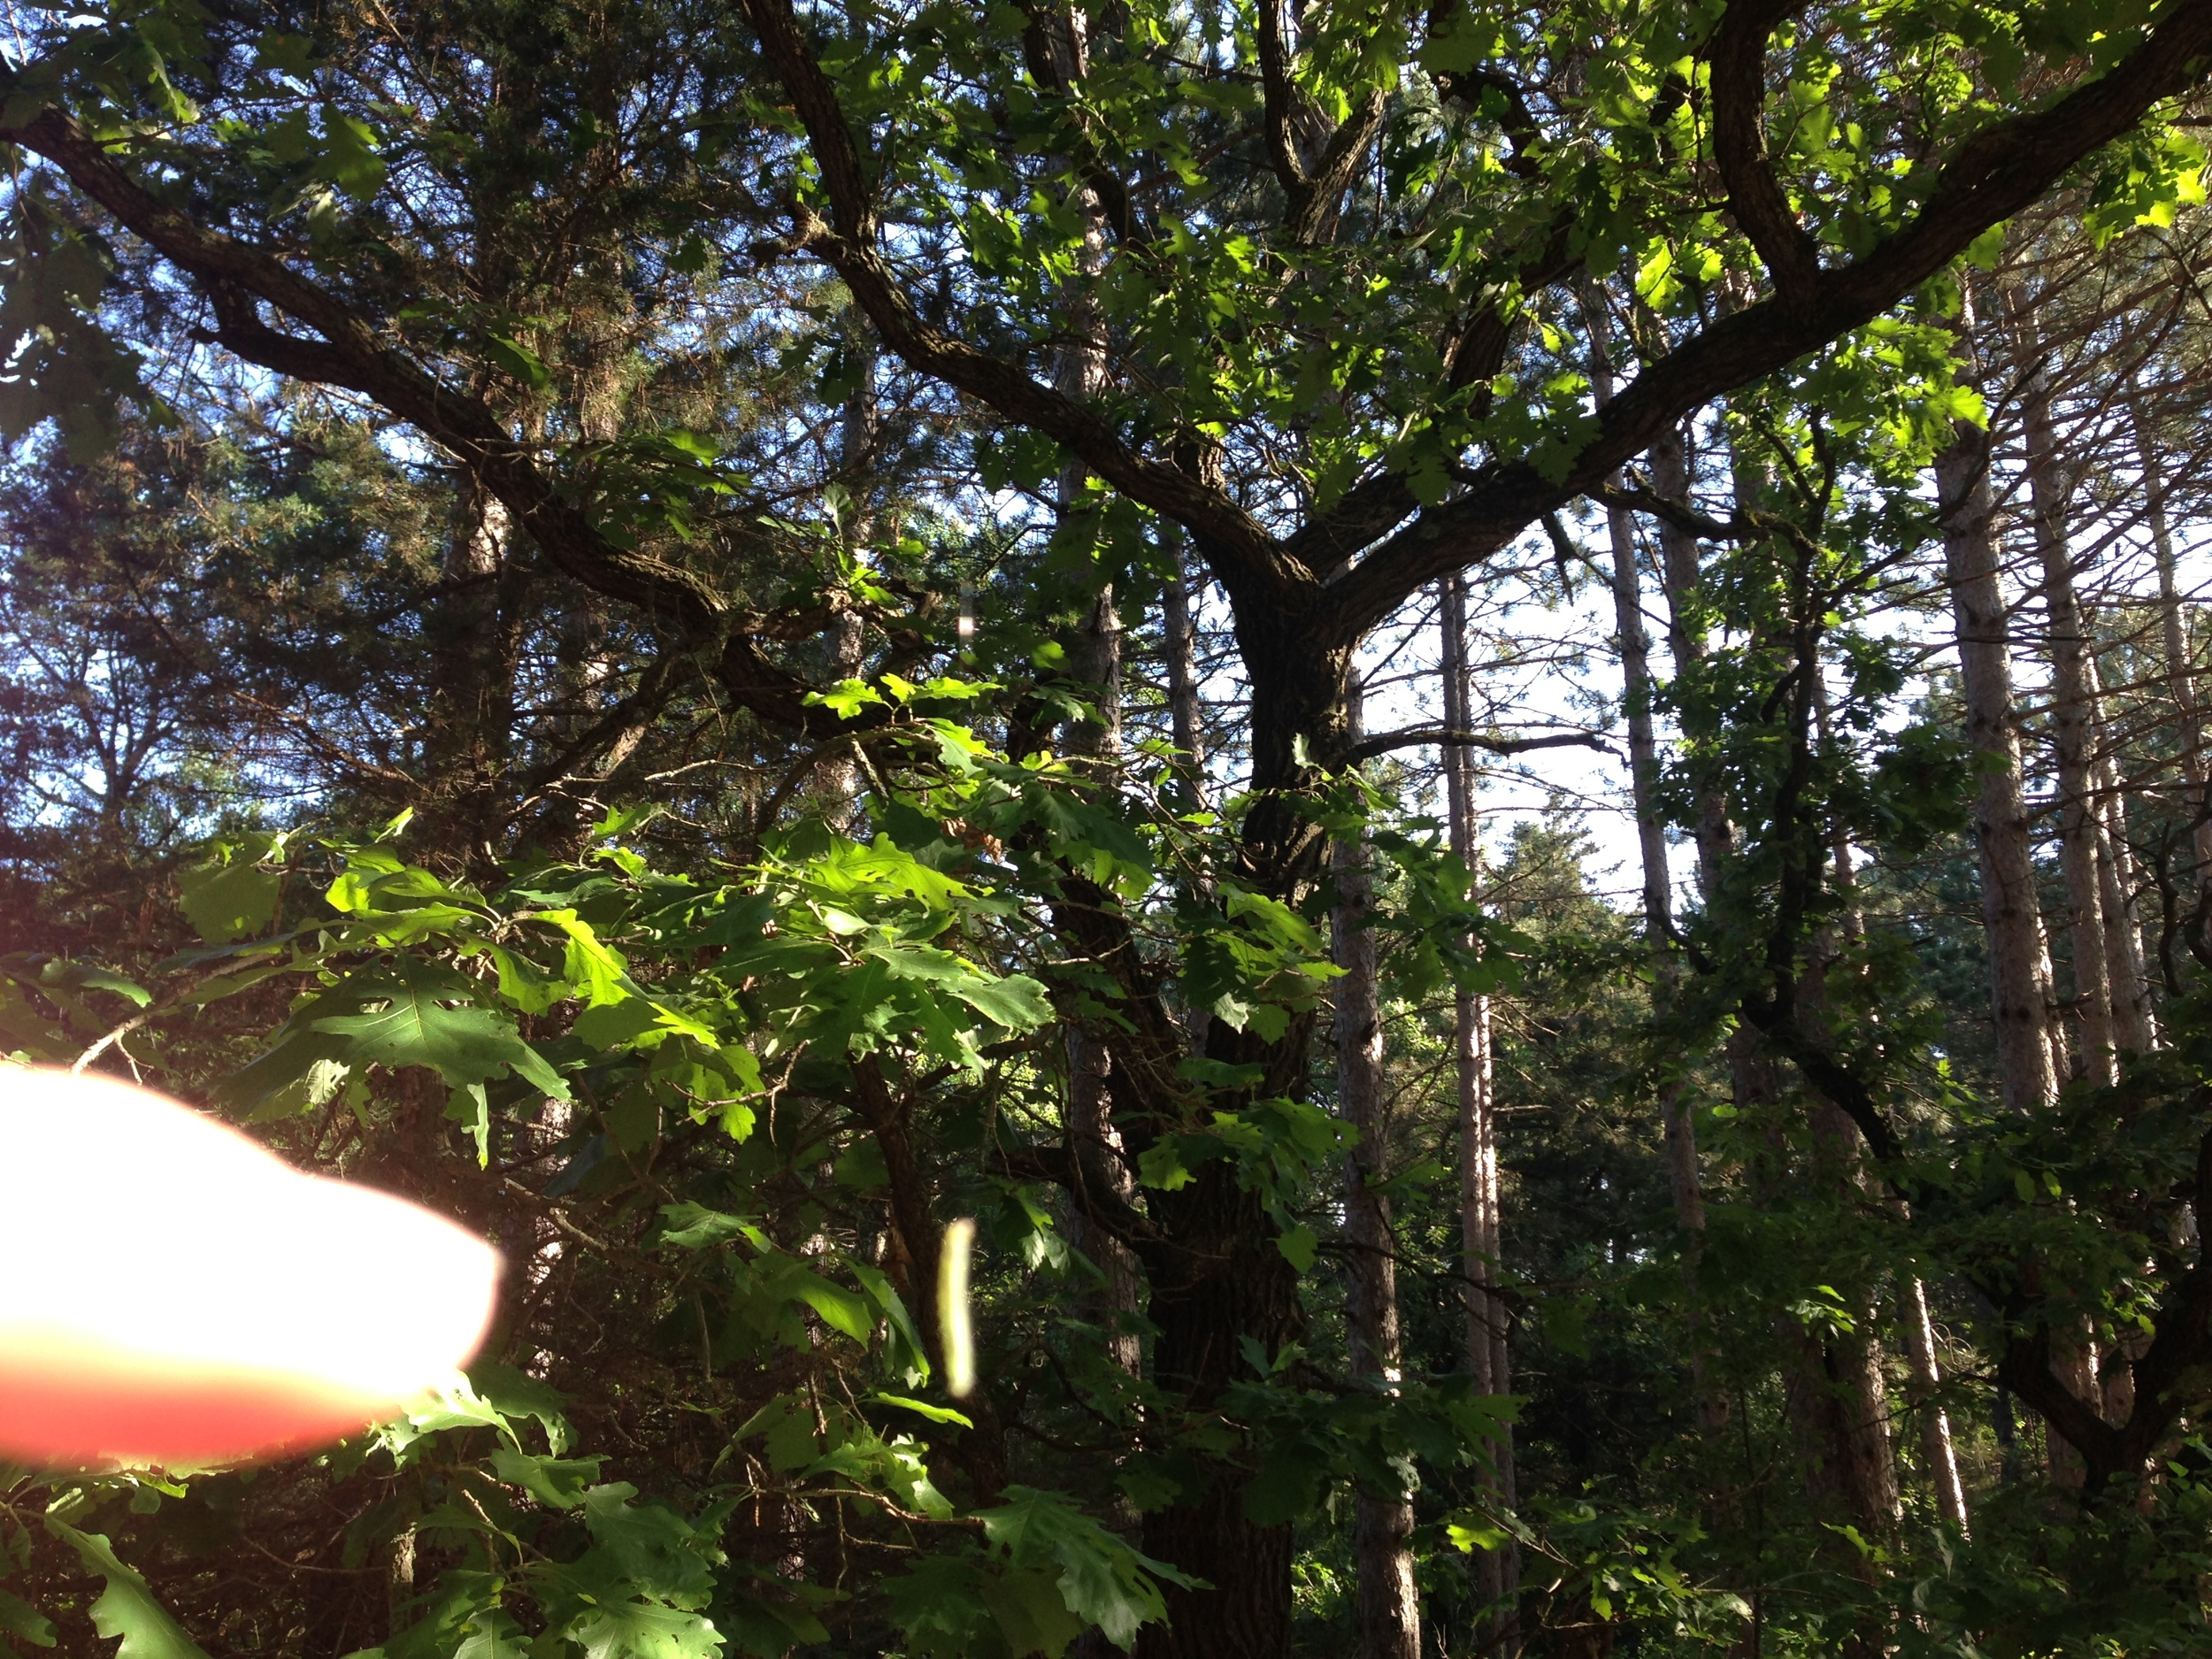 See the light green thing I'm pointing at? Thats a caterpillar, in mid air, hanging from a tree.